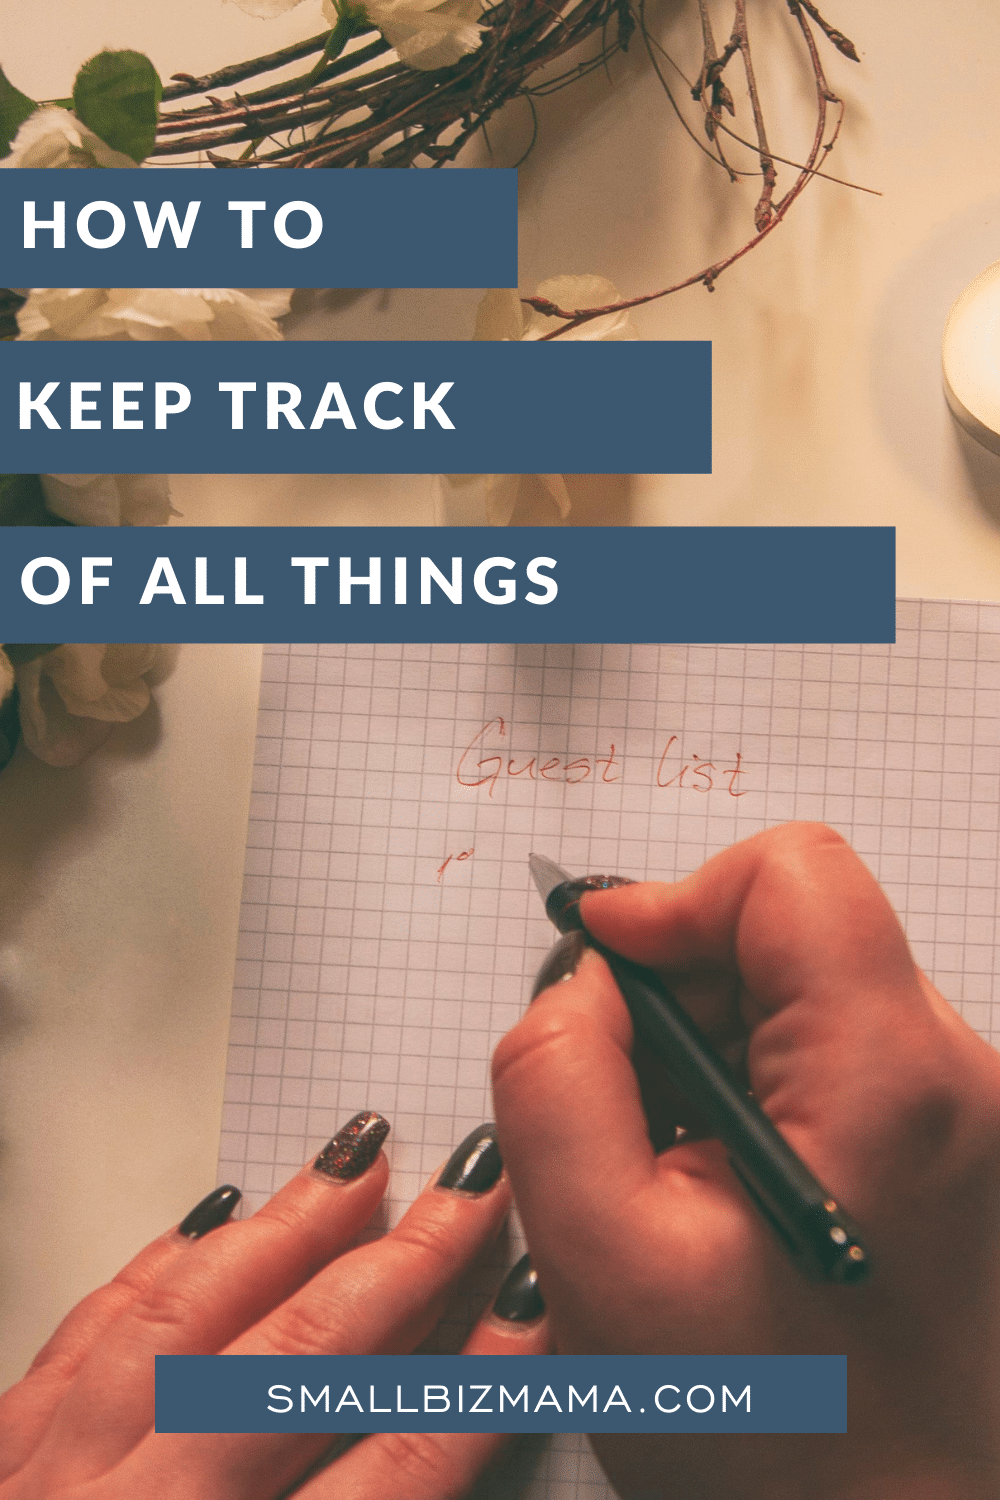 How to keep track of all things